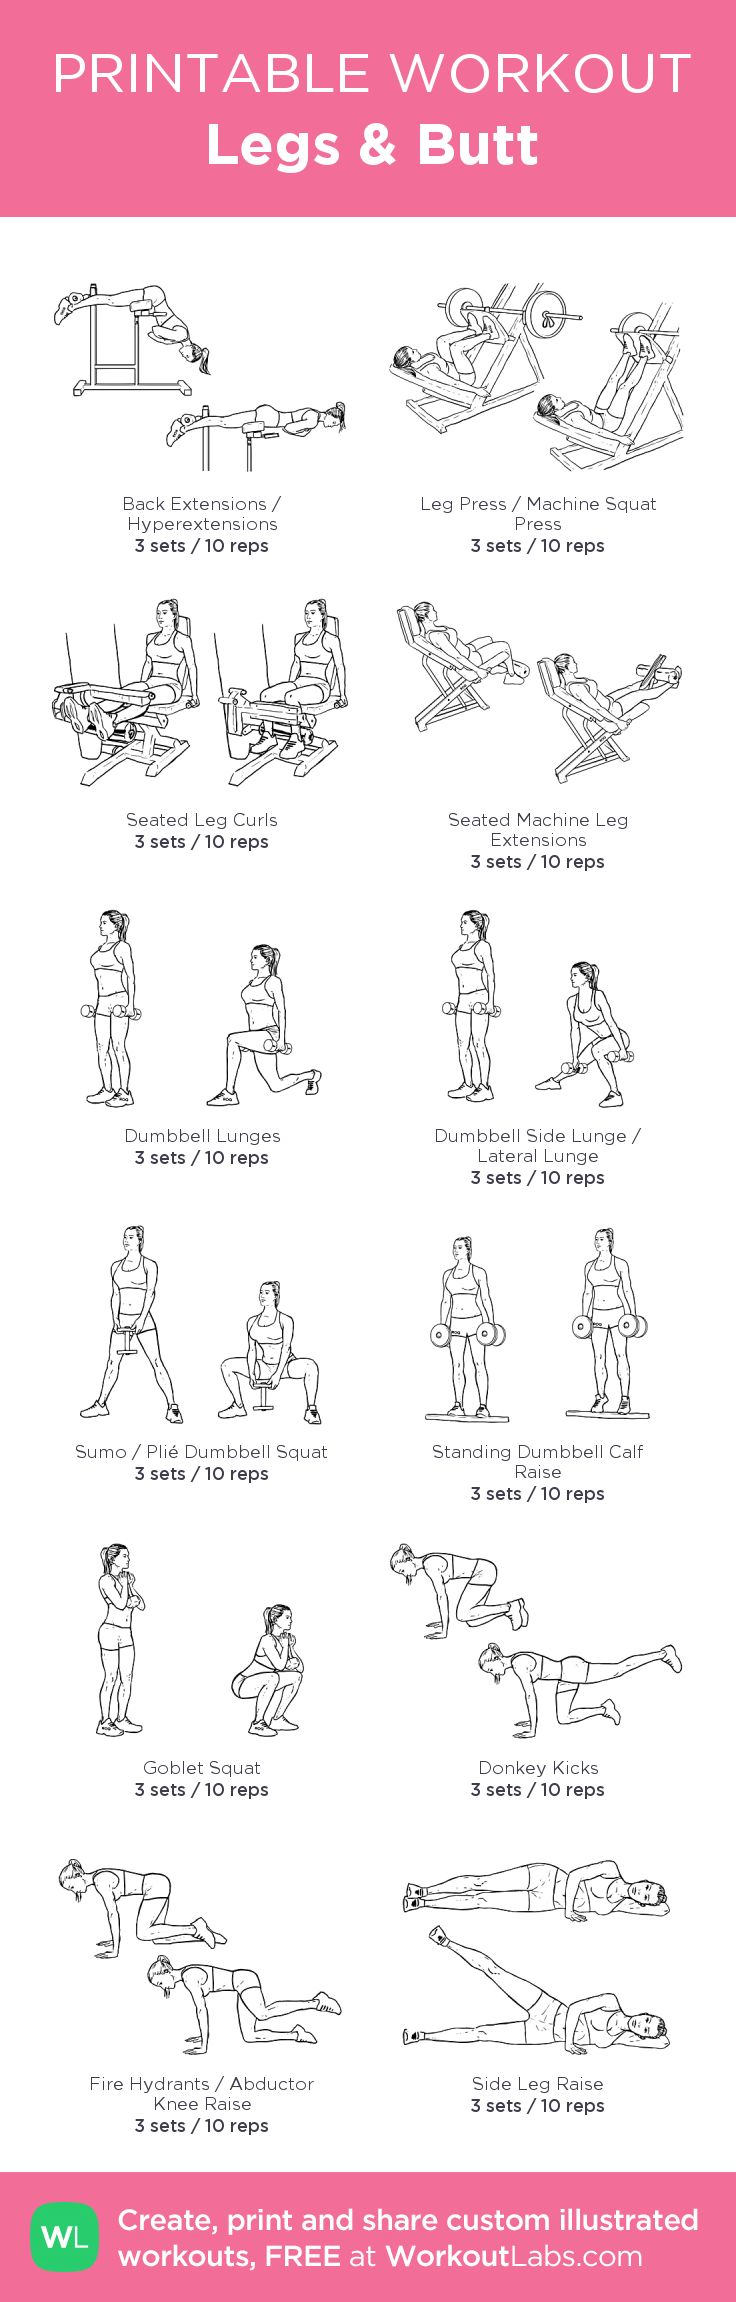 Legs & Butt – my custom workout created at WorkoutLabs.com • Click through to download as printable PDF! #customworkout